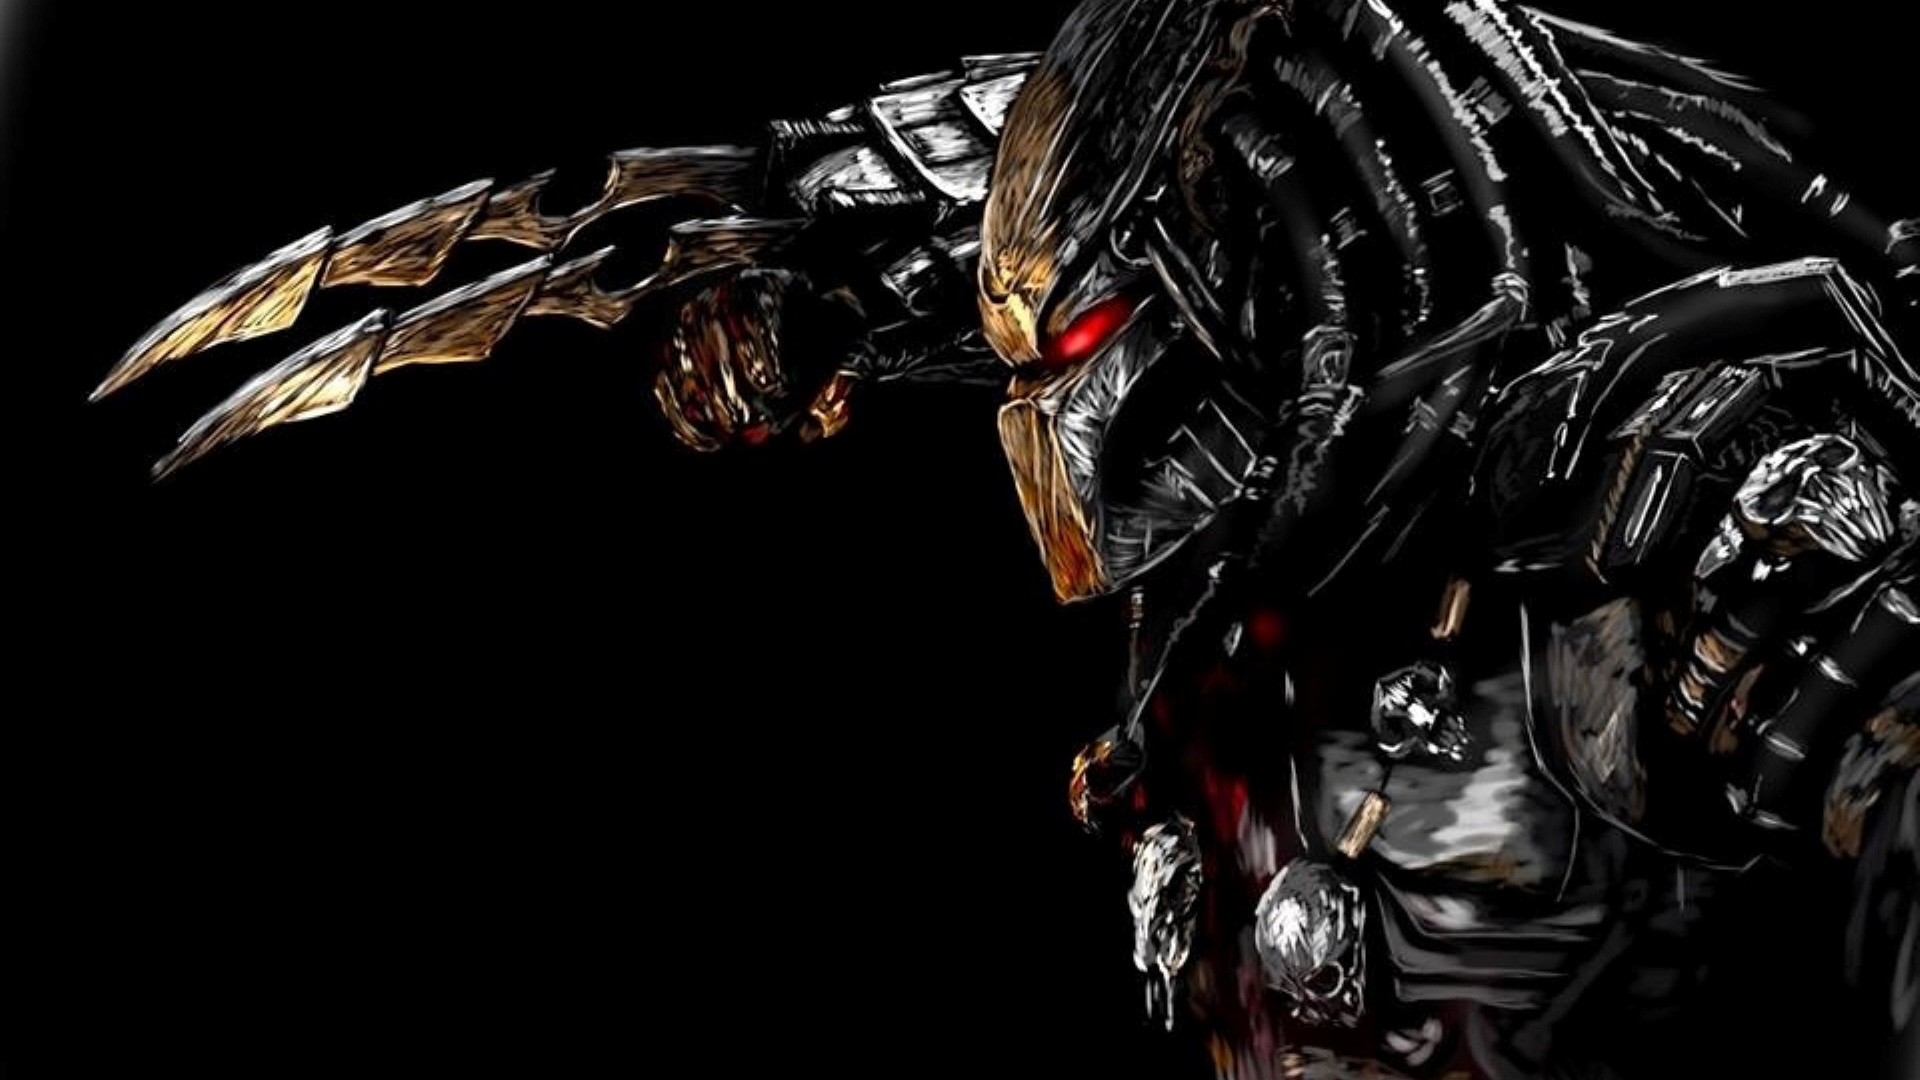 Free Download Steam Community Best Predator Wallpaper 1920x1080 For Your Desktop Mobile Tablet Explore 73 Predator Wallpaper Alien Vs Predator Wallpaper Nashville Predators Wallpaper